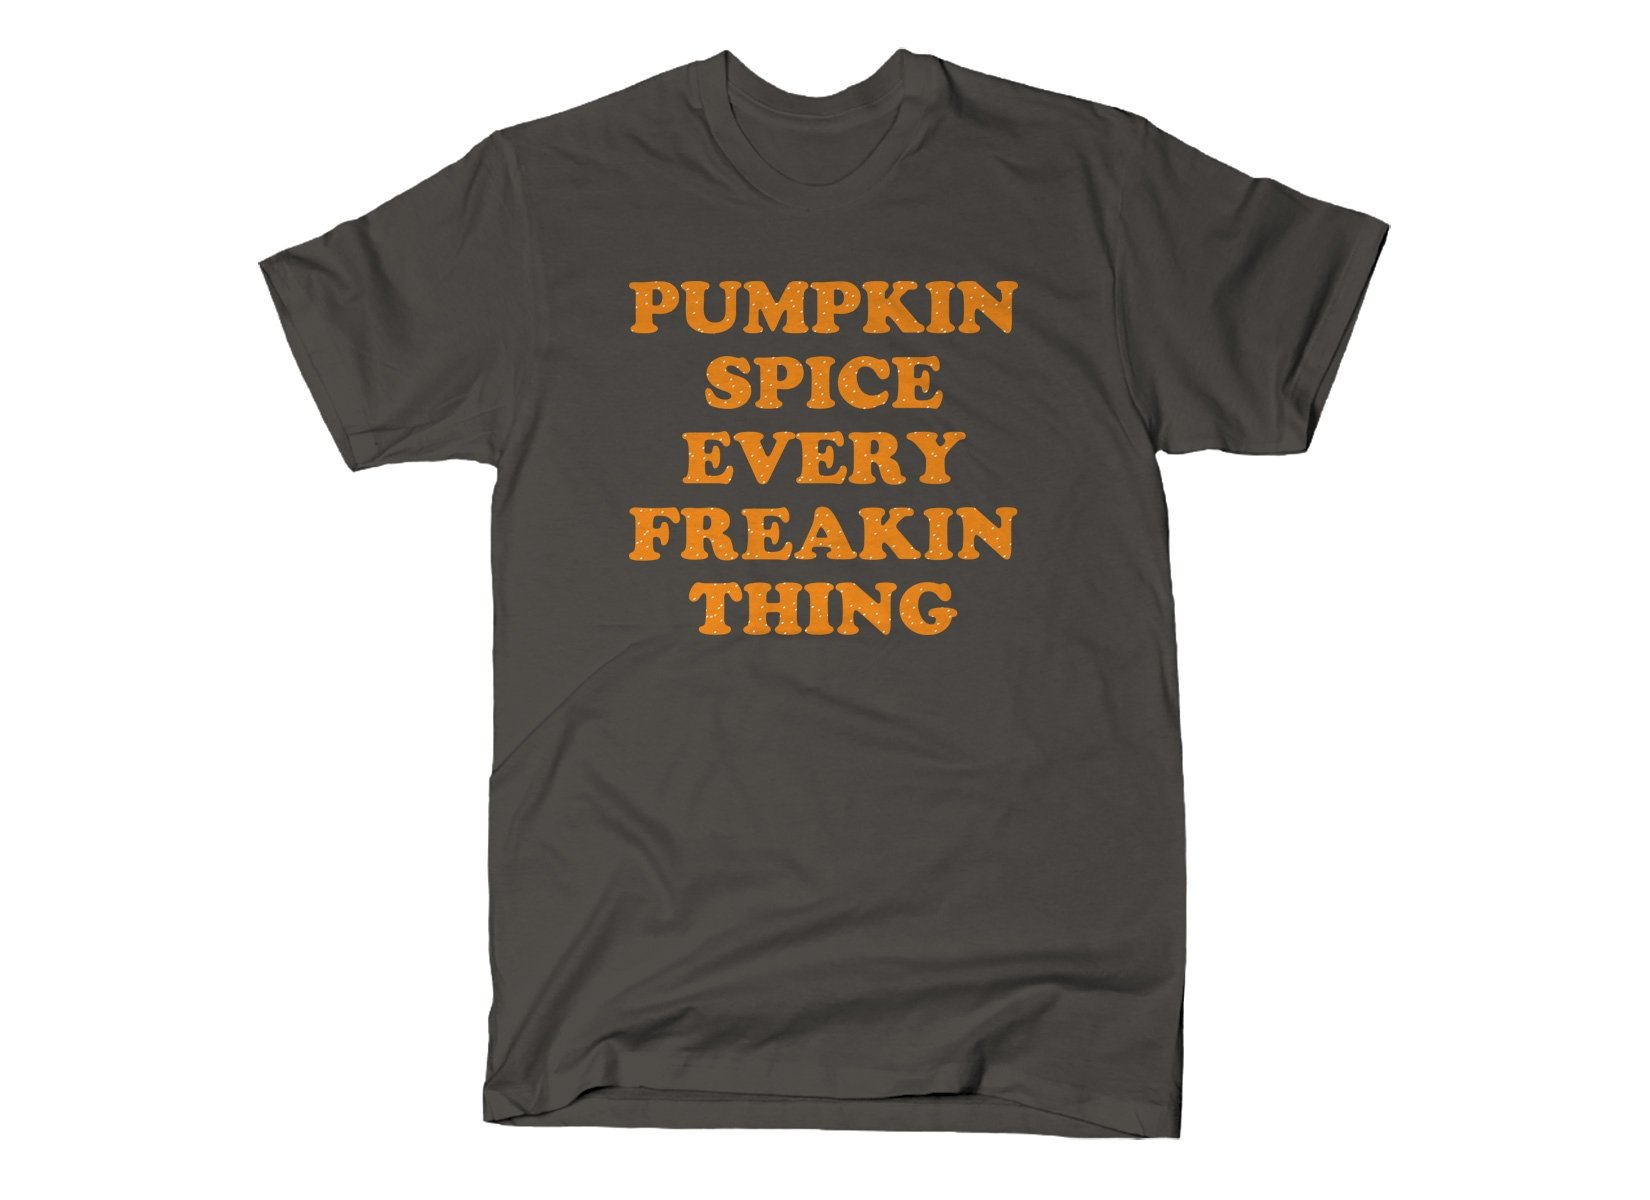 Pumpkin Spice Every Freakin Thing on Mens T-Shirt